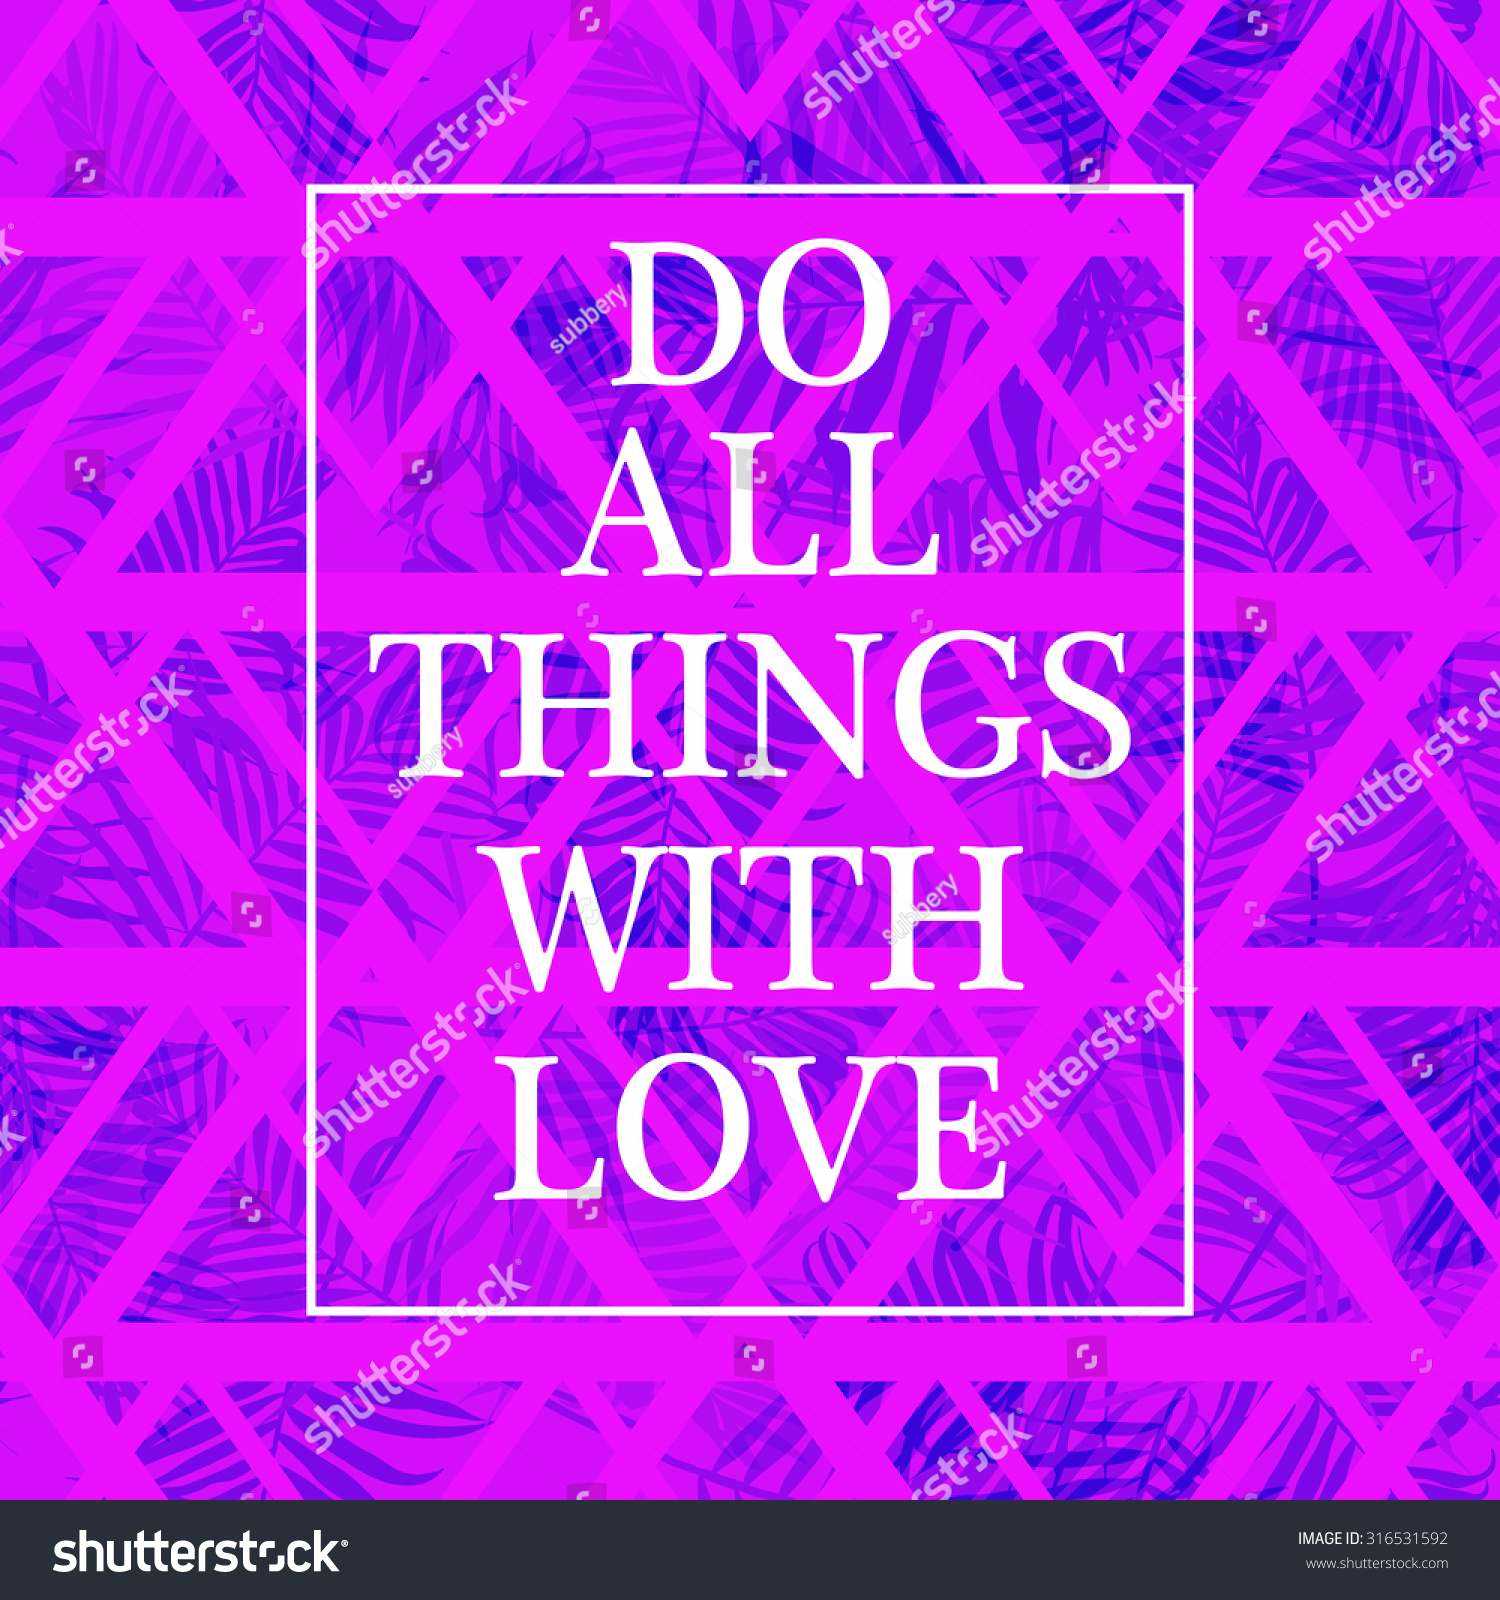 Best Wallpaper Marble Neon - stock-vector-inspirational-fashion-wallpaper-neon-colored-print-design-vector-poster-with-quote-on-exotic-316531592  Photograph_892913.jpg